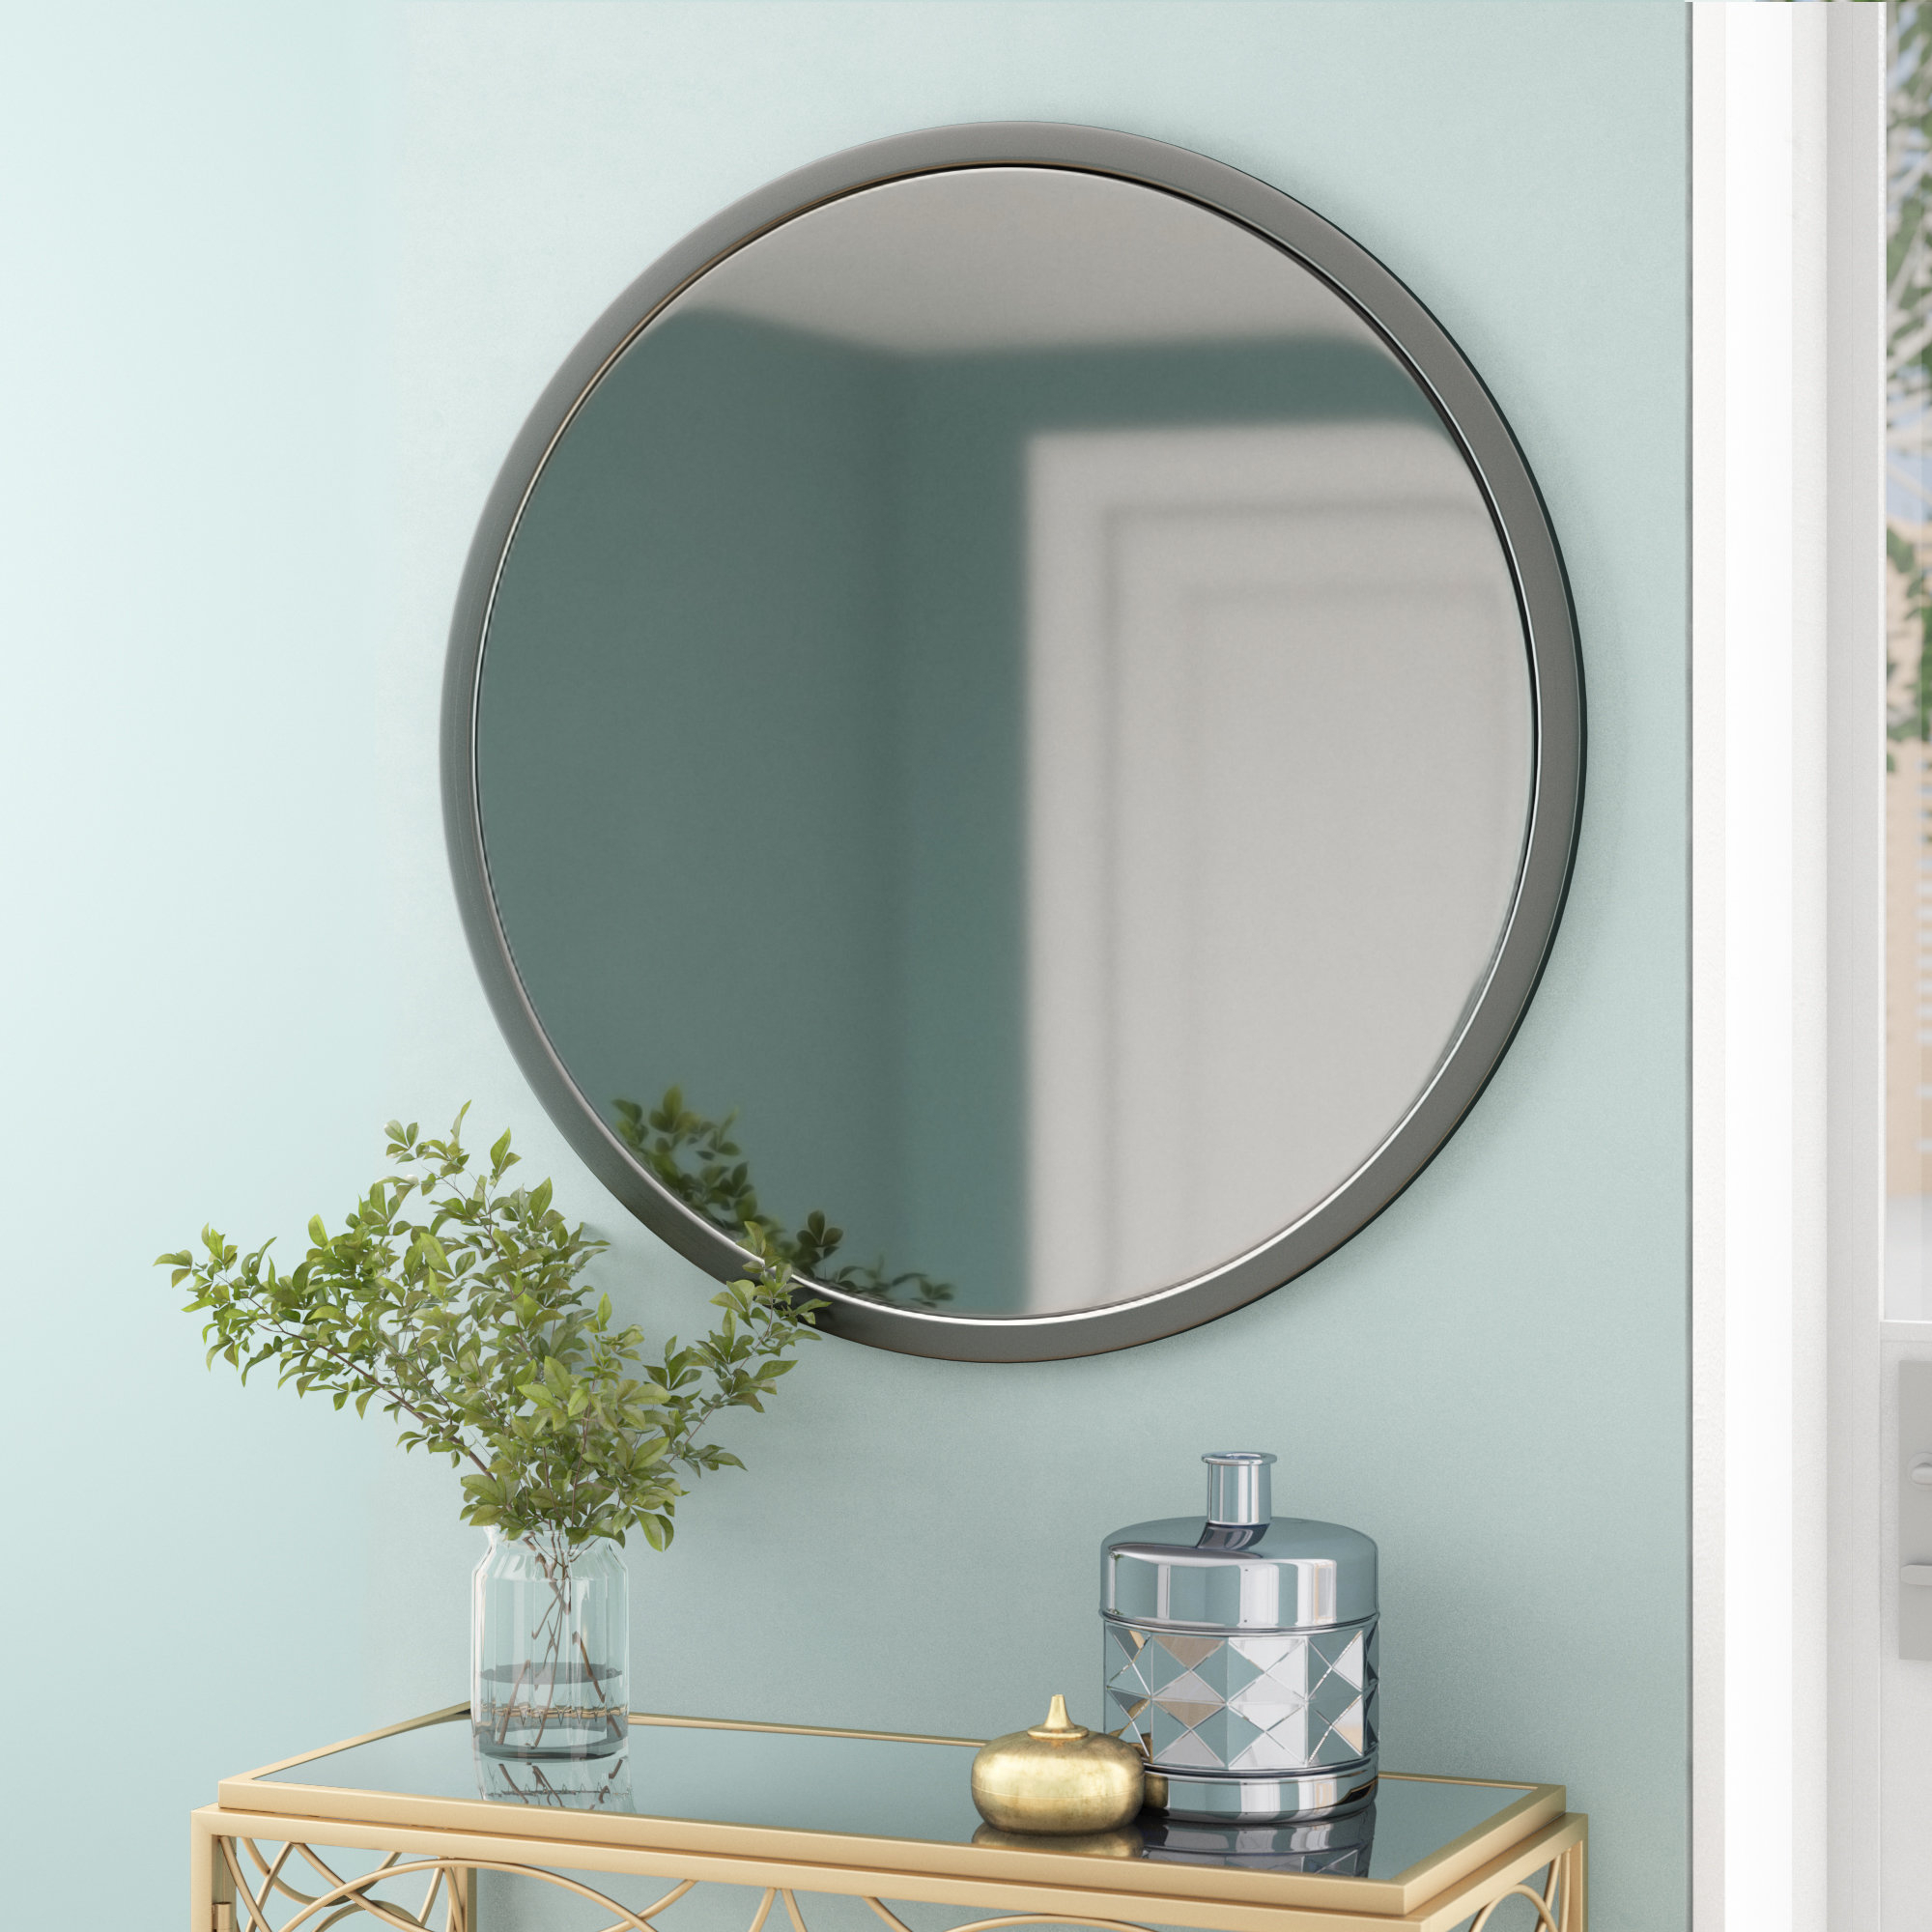 Modern Metal Round Wall Mirrors | Allmodern Intended For Brynn Accent Mirrors (View 12 of 30)